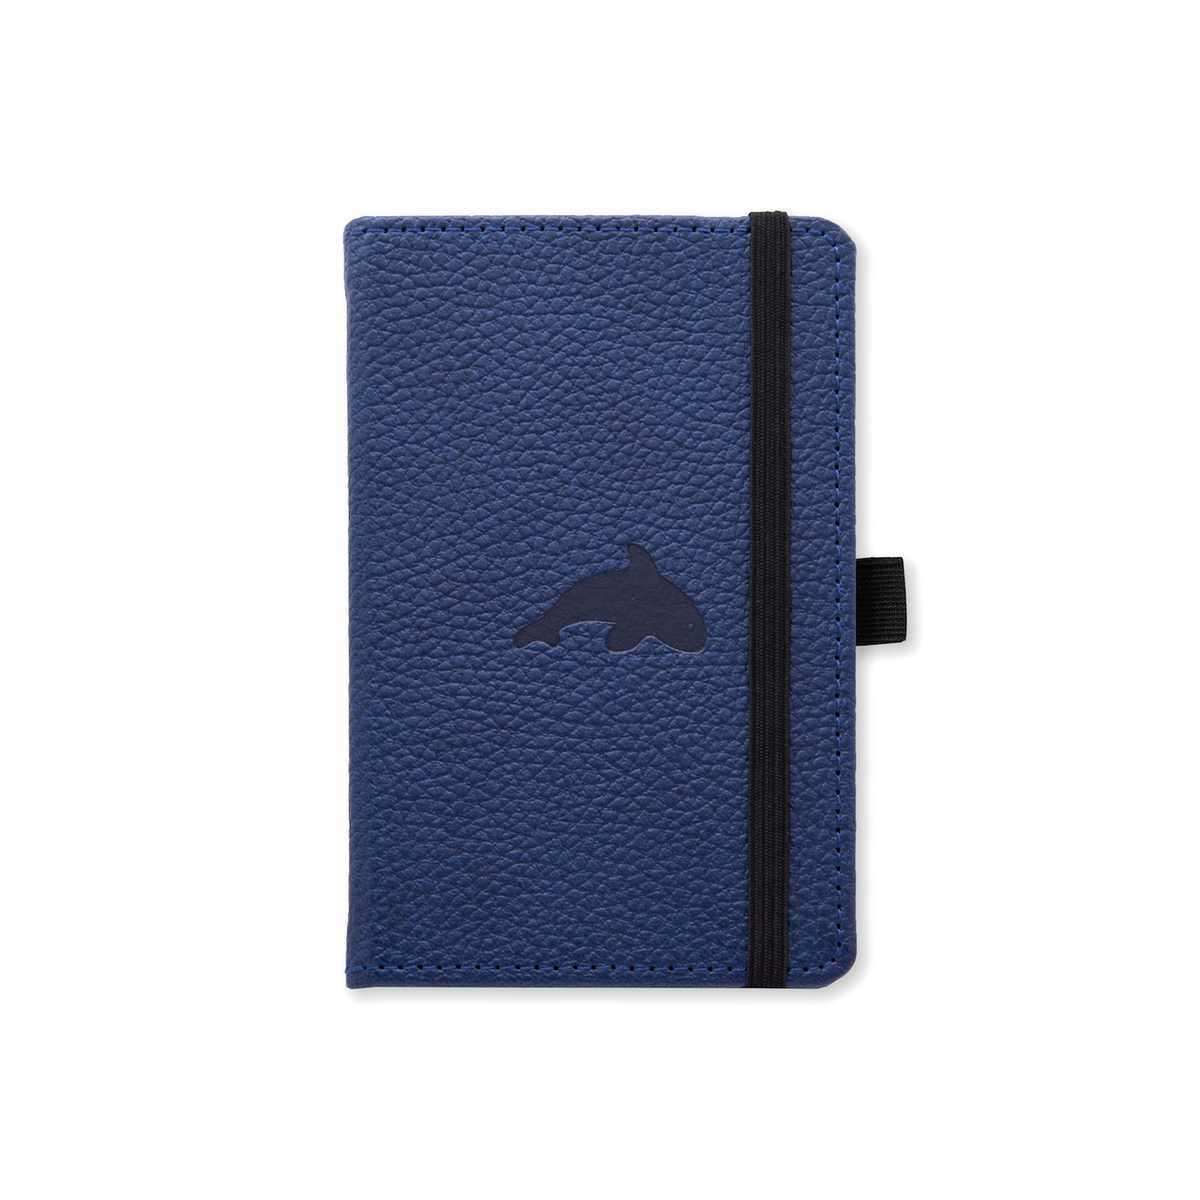 POCKET DOT GRID NOTEBOOK - WILDLIFE COLLECTION - BLUE WHALE